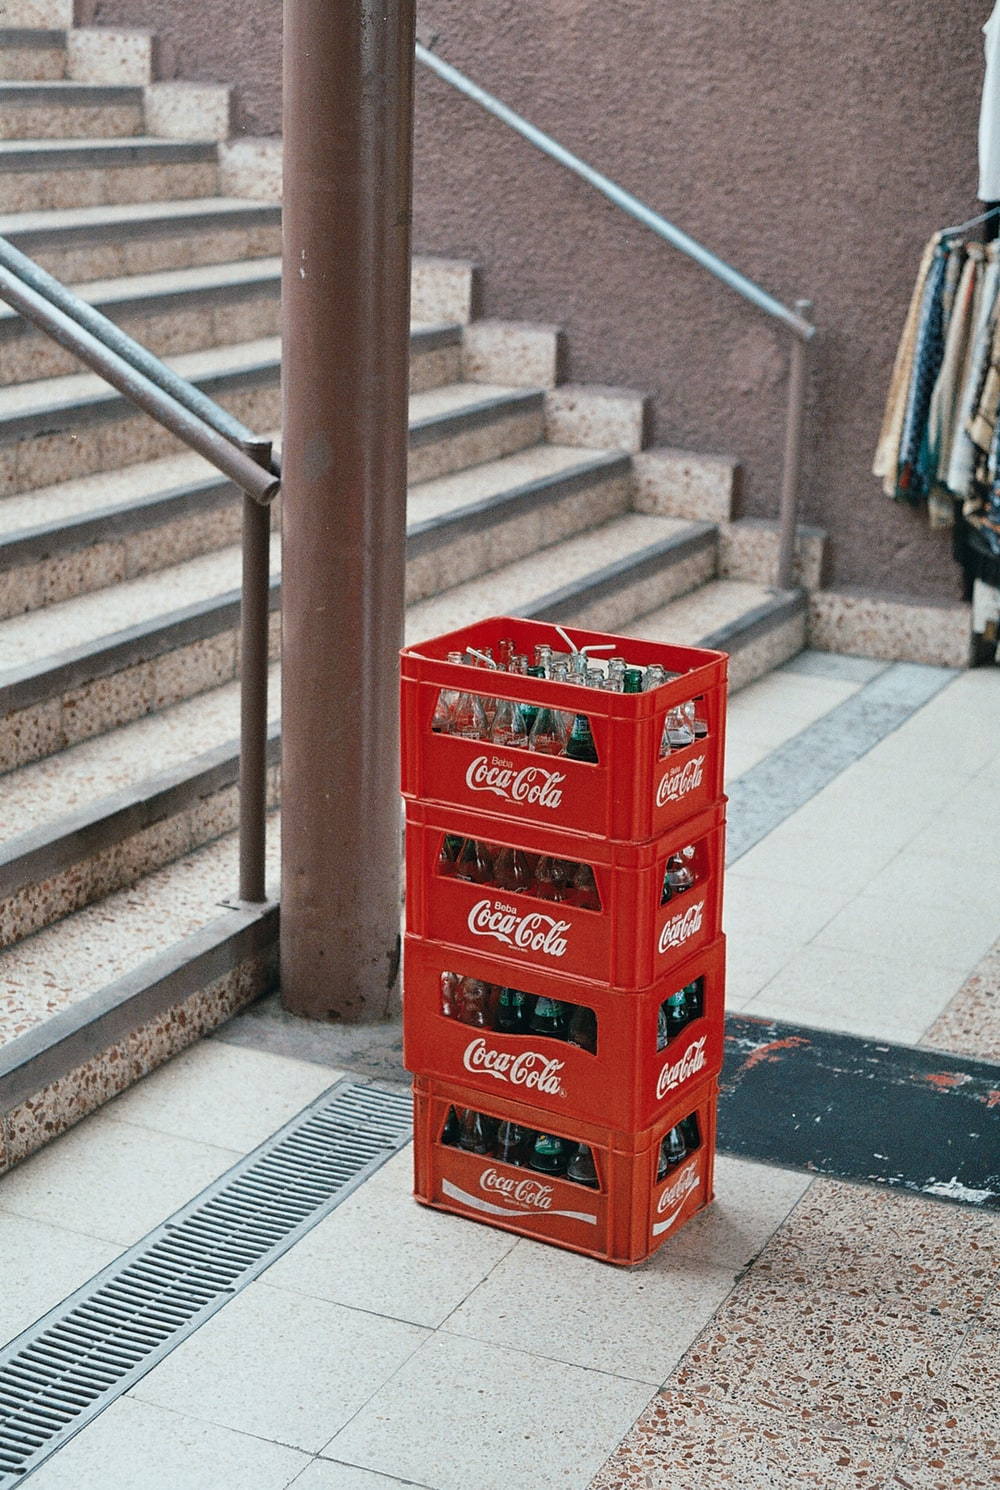 pile of four red Coca-Cola bottle crates near stairs